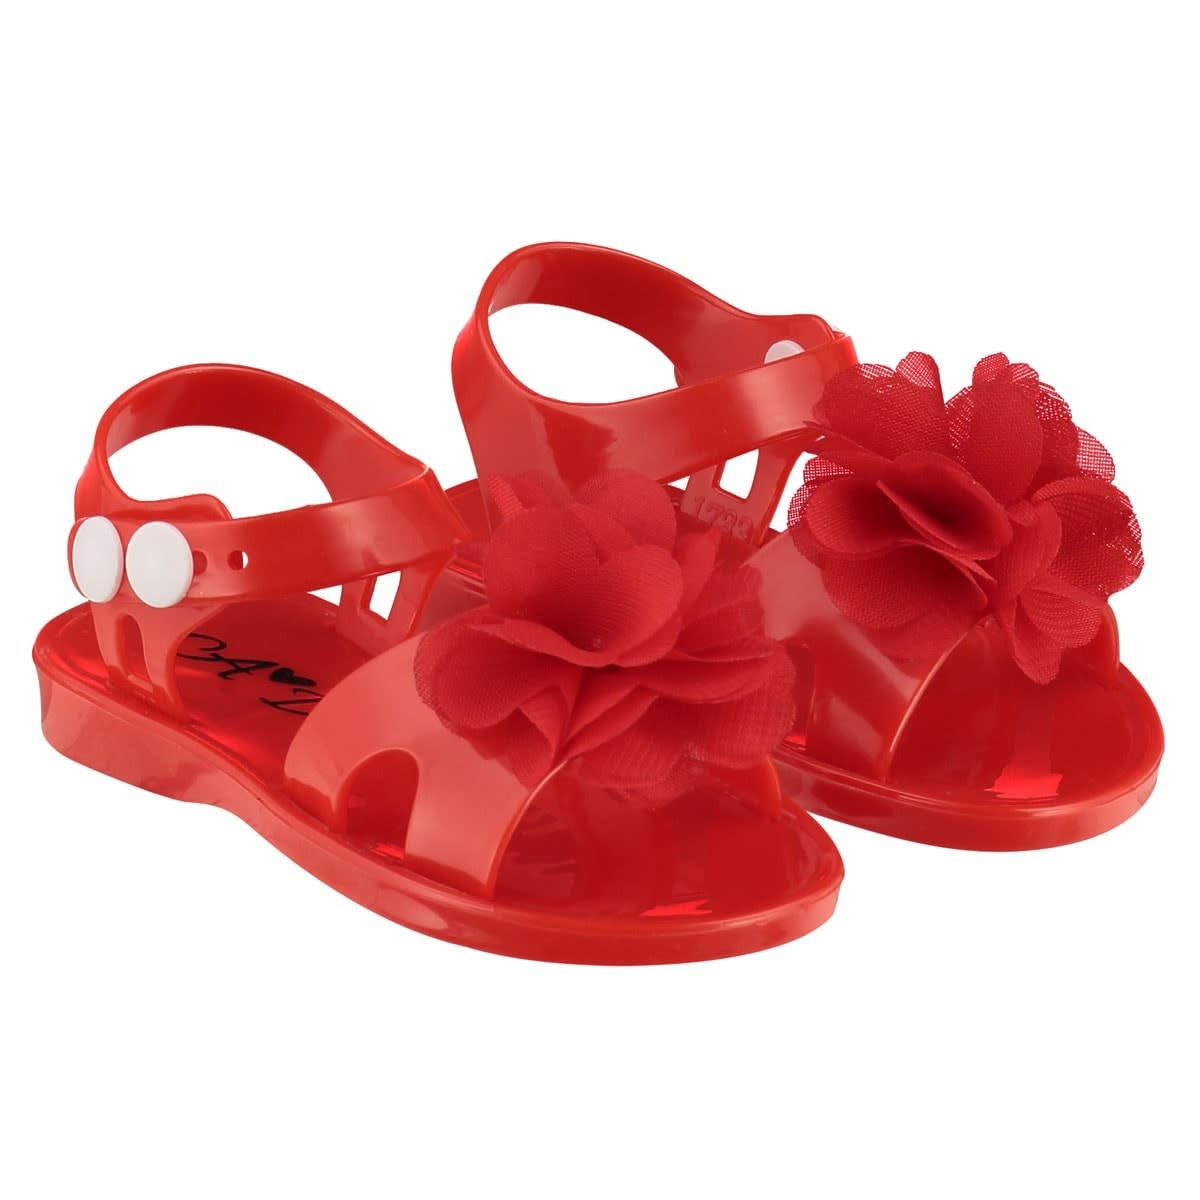 A Dee ADee Suzy Summer Jelly Shoe Red